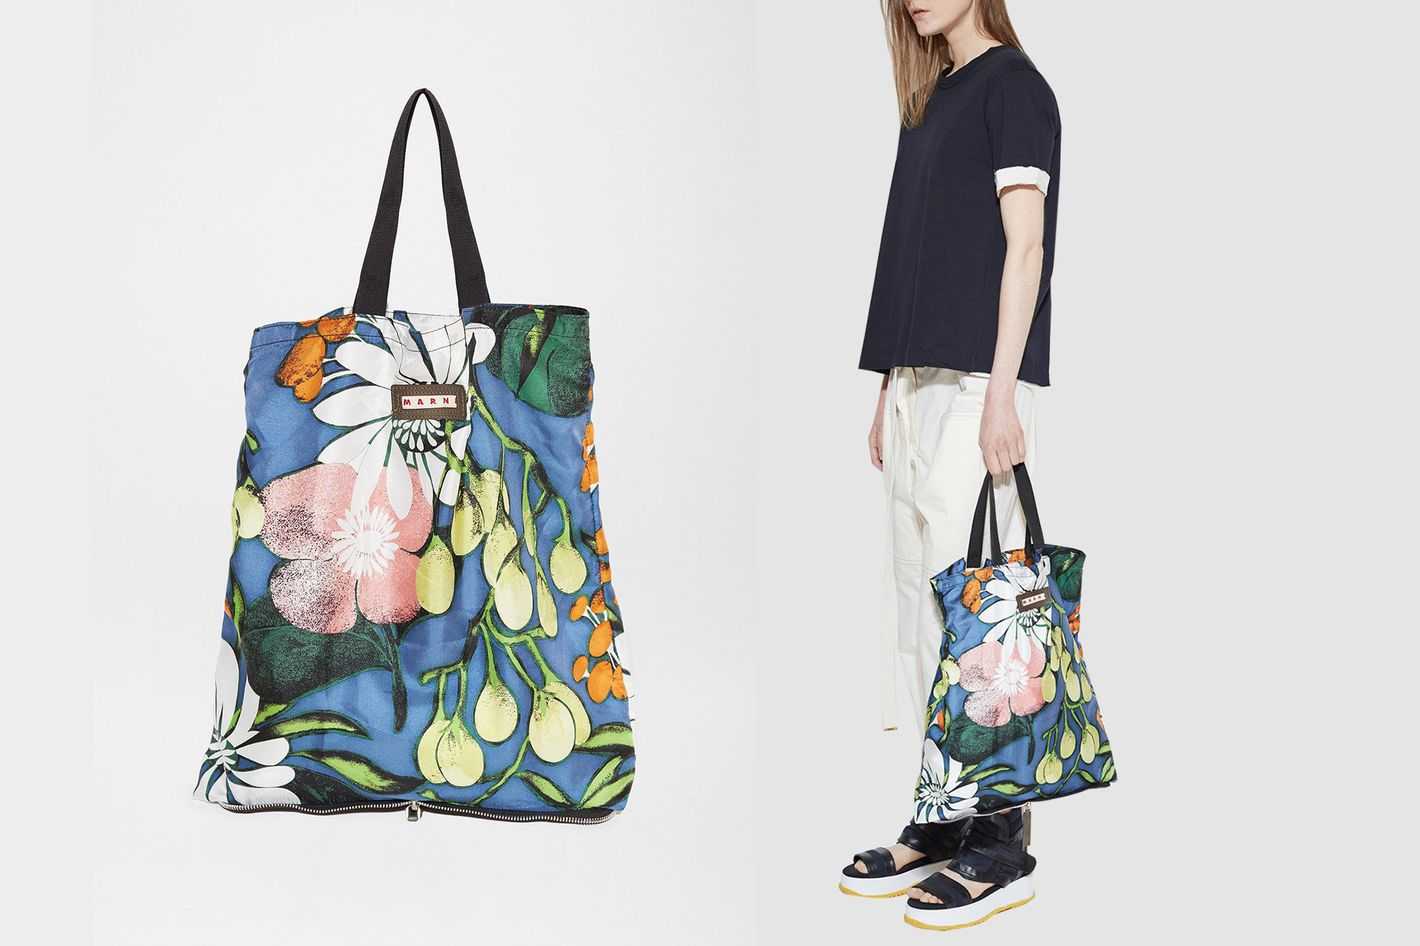 Marni Packable Shopping Bag